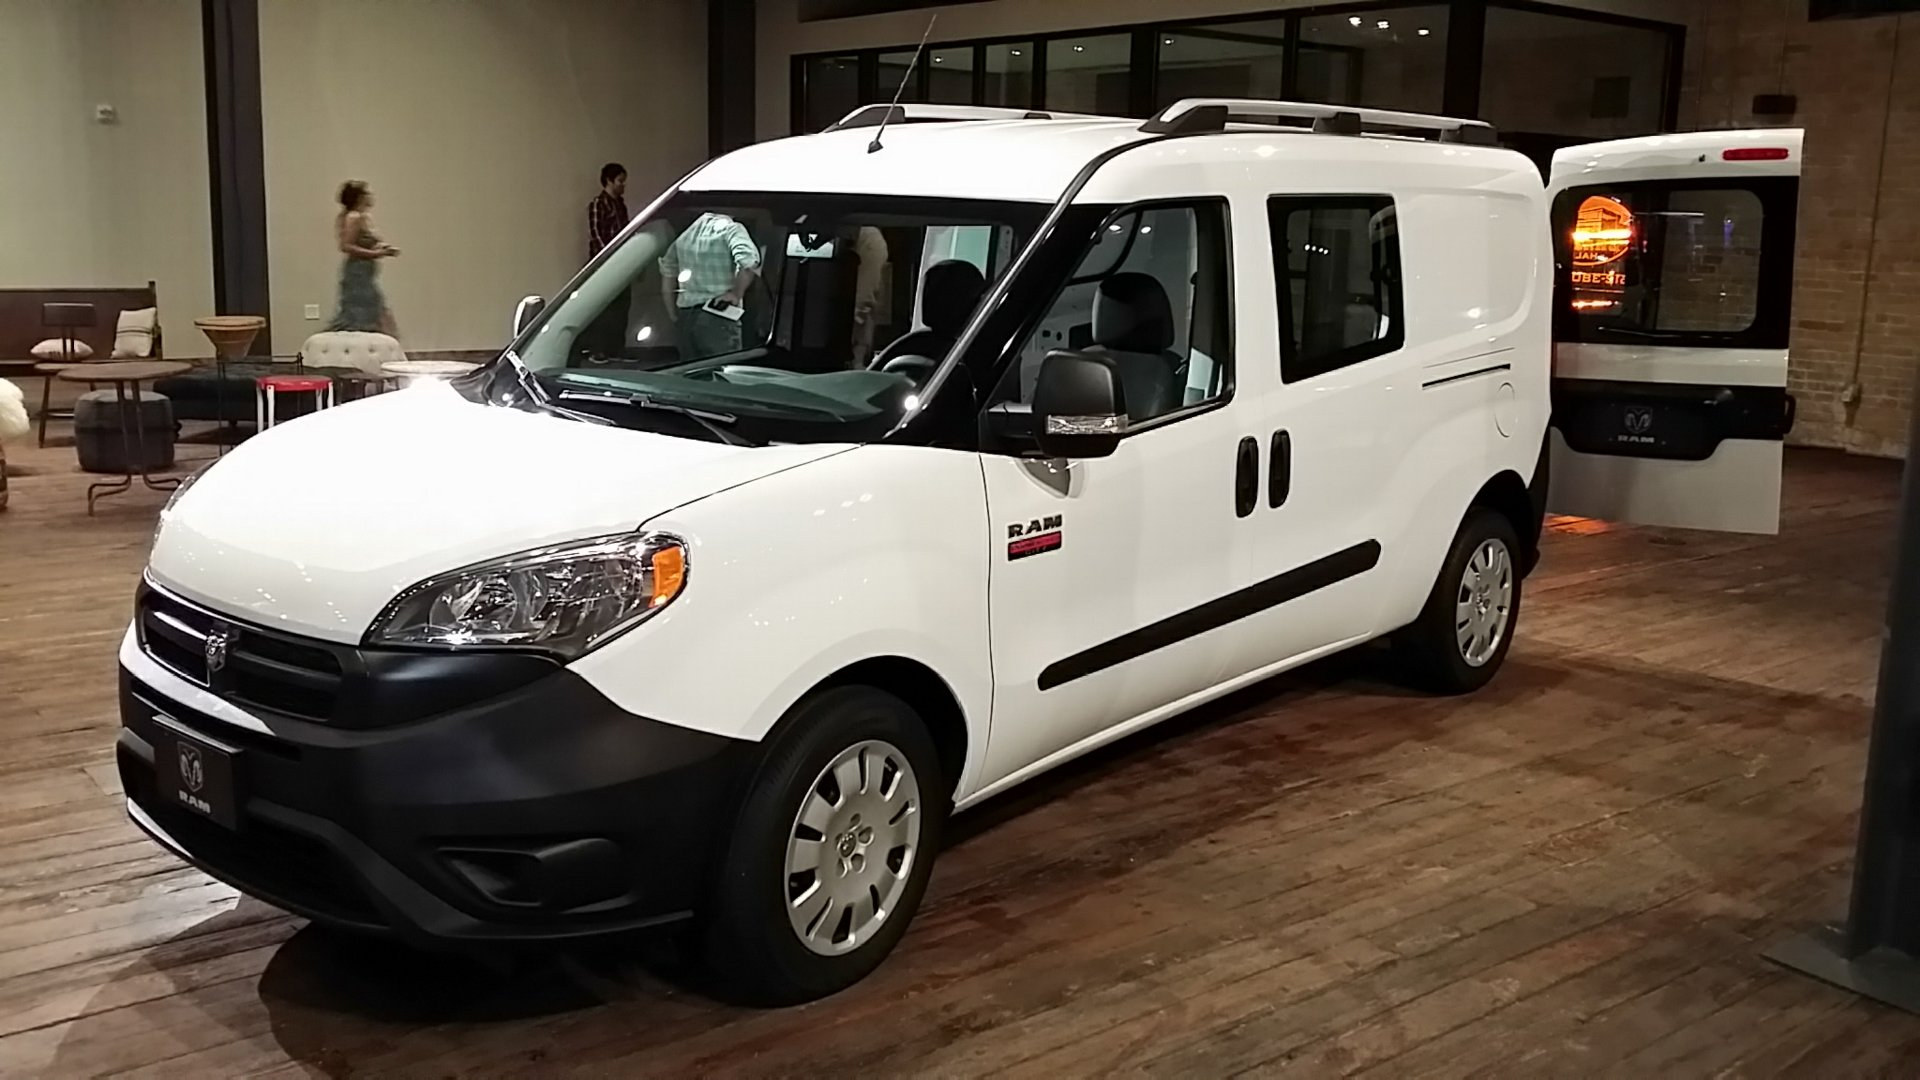 Ram Promaster City Ricks Free Auto Repair Advice Ricks